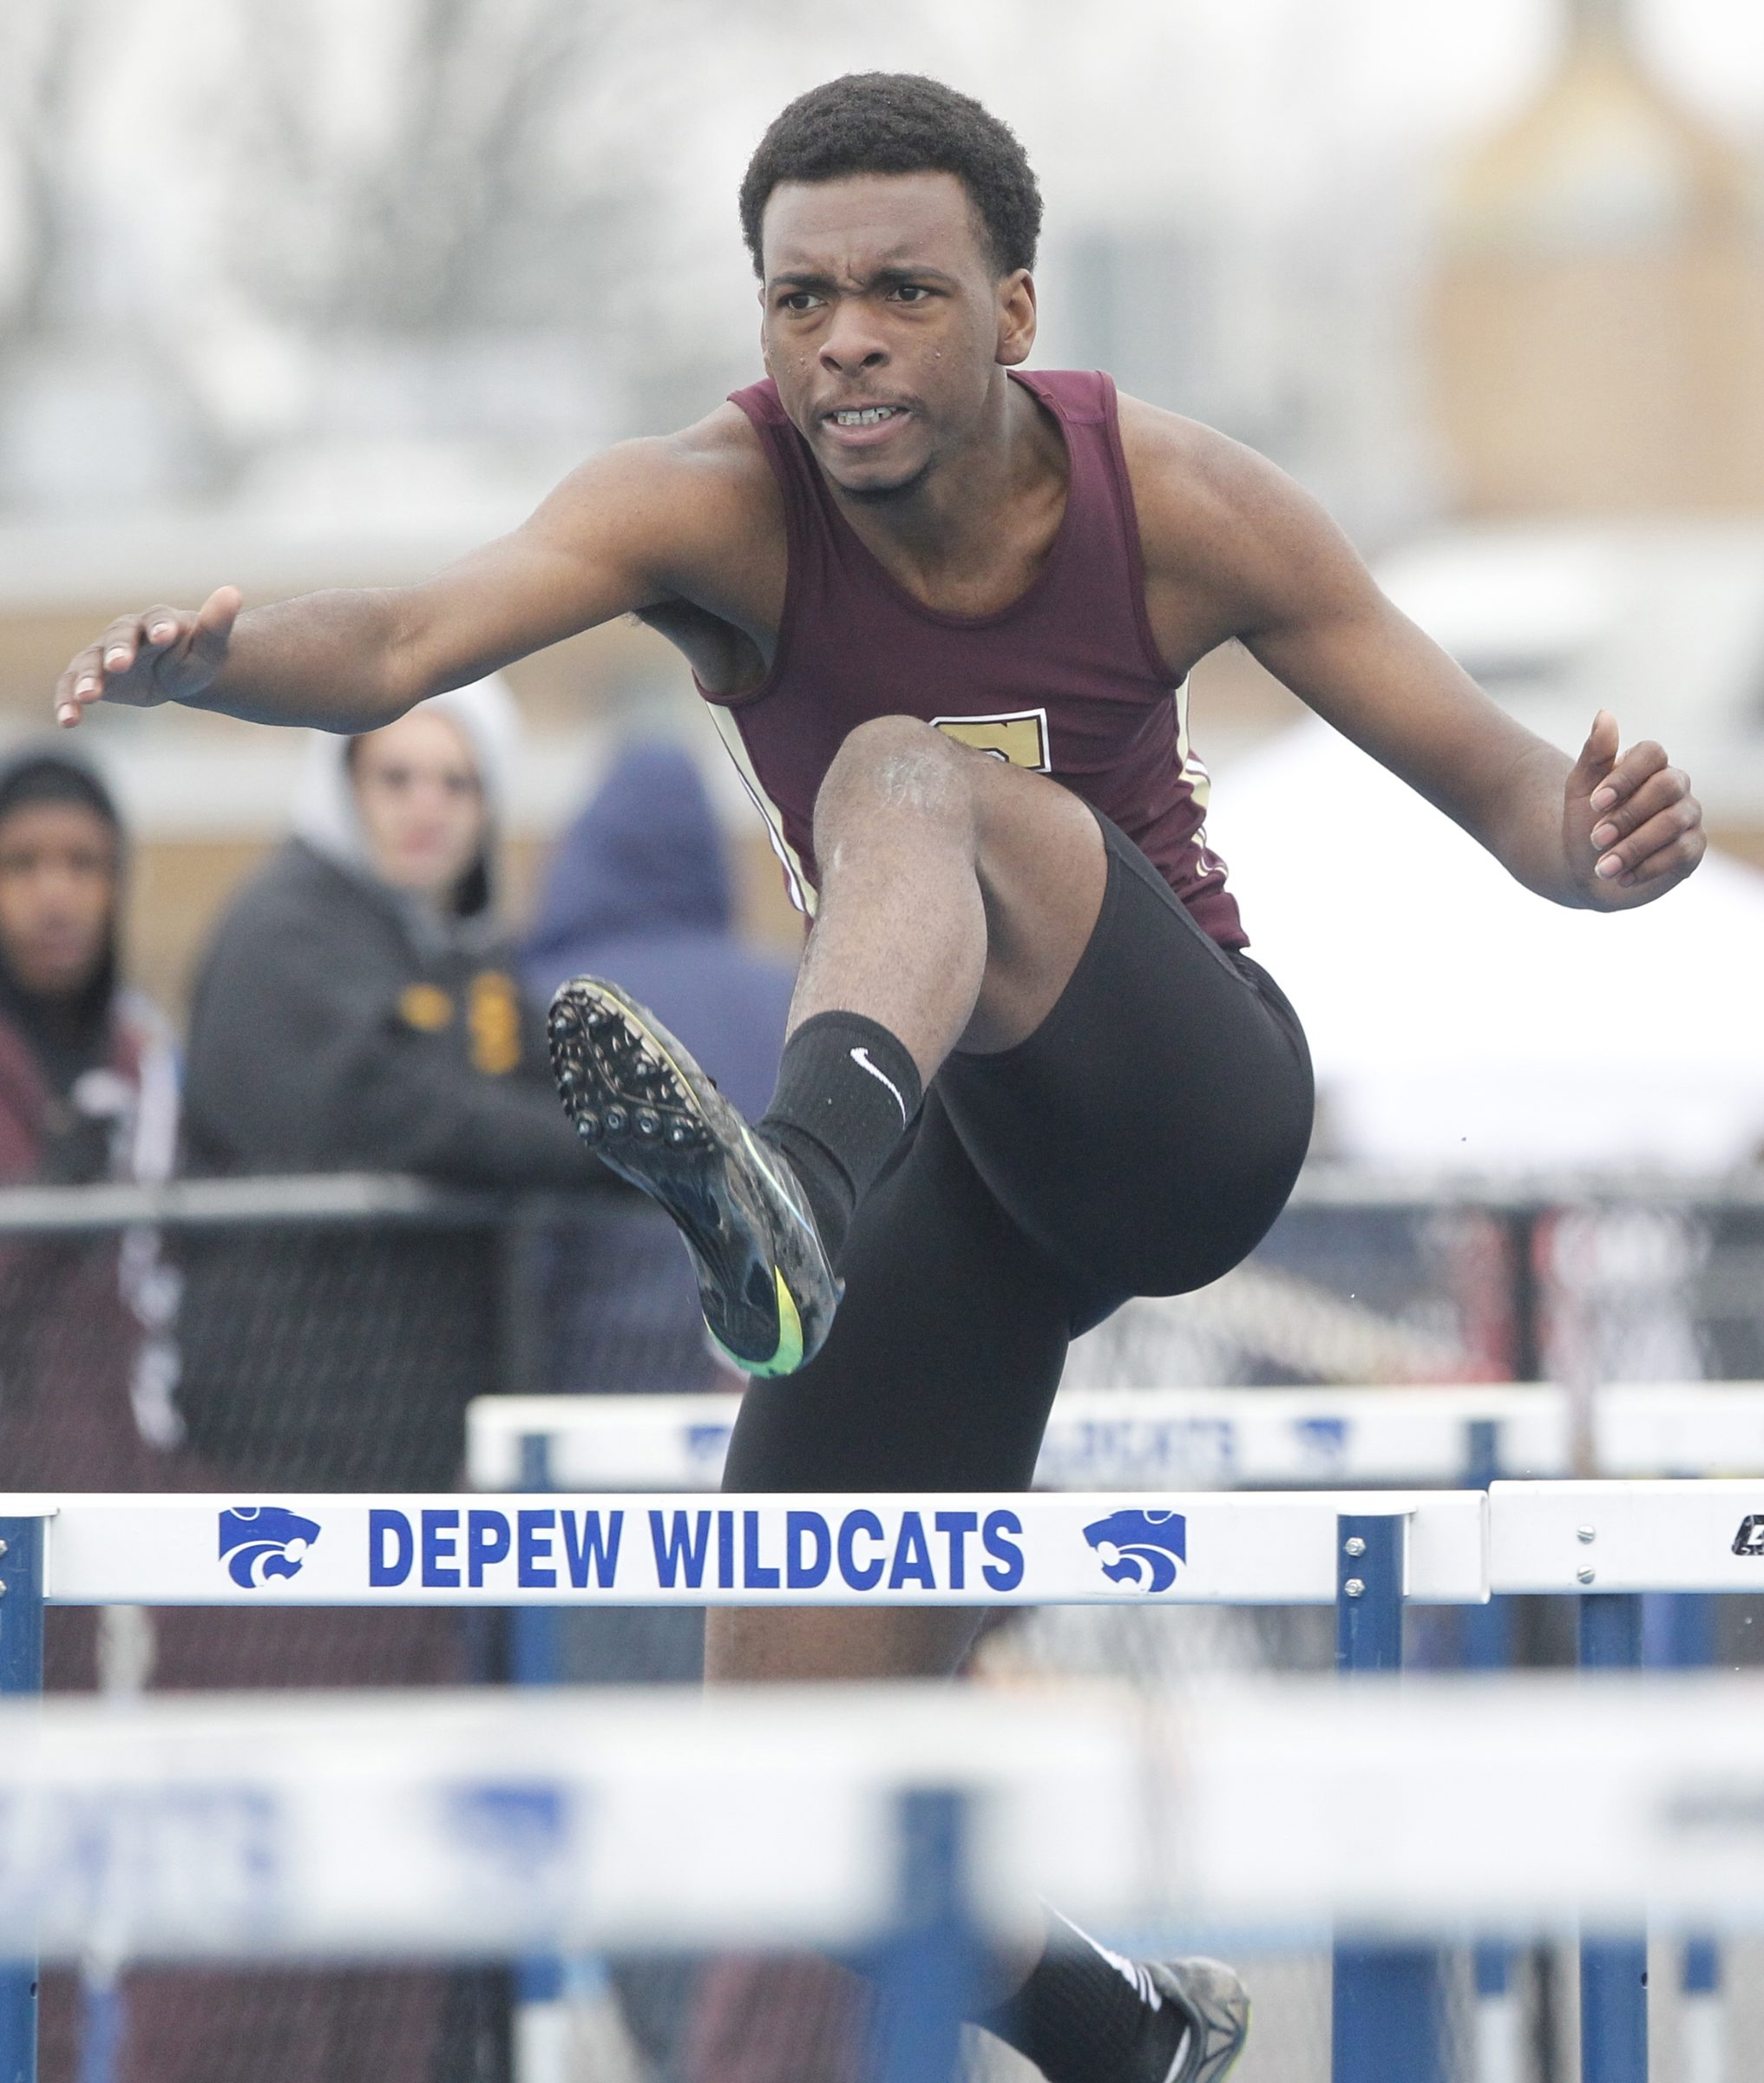 Joe Sudderth from Cheektowaga High school jumps a hurdle during Heat 3 of the Shuttle relay race during the Depew Wildcat relays at Depew high school on, Saturday, April 26, 2014. {Photo by Harry Scull Jr. /Buffalo News}